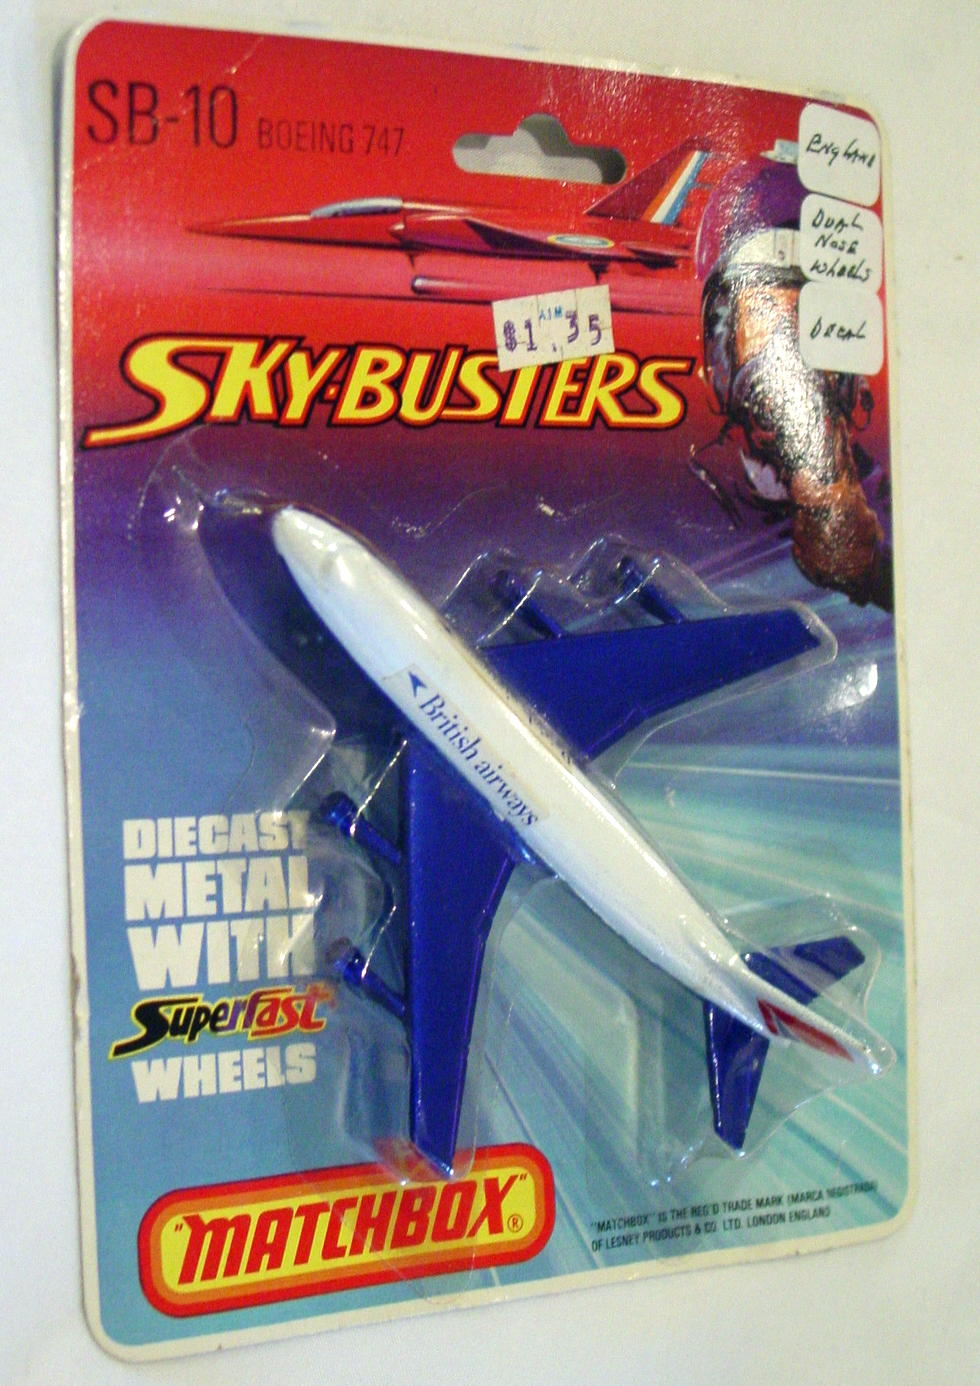 Sky Buster 10 A 3 - Boeing 747 White thick axle Brit Airways labels ENG C9 BP